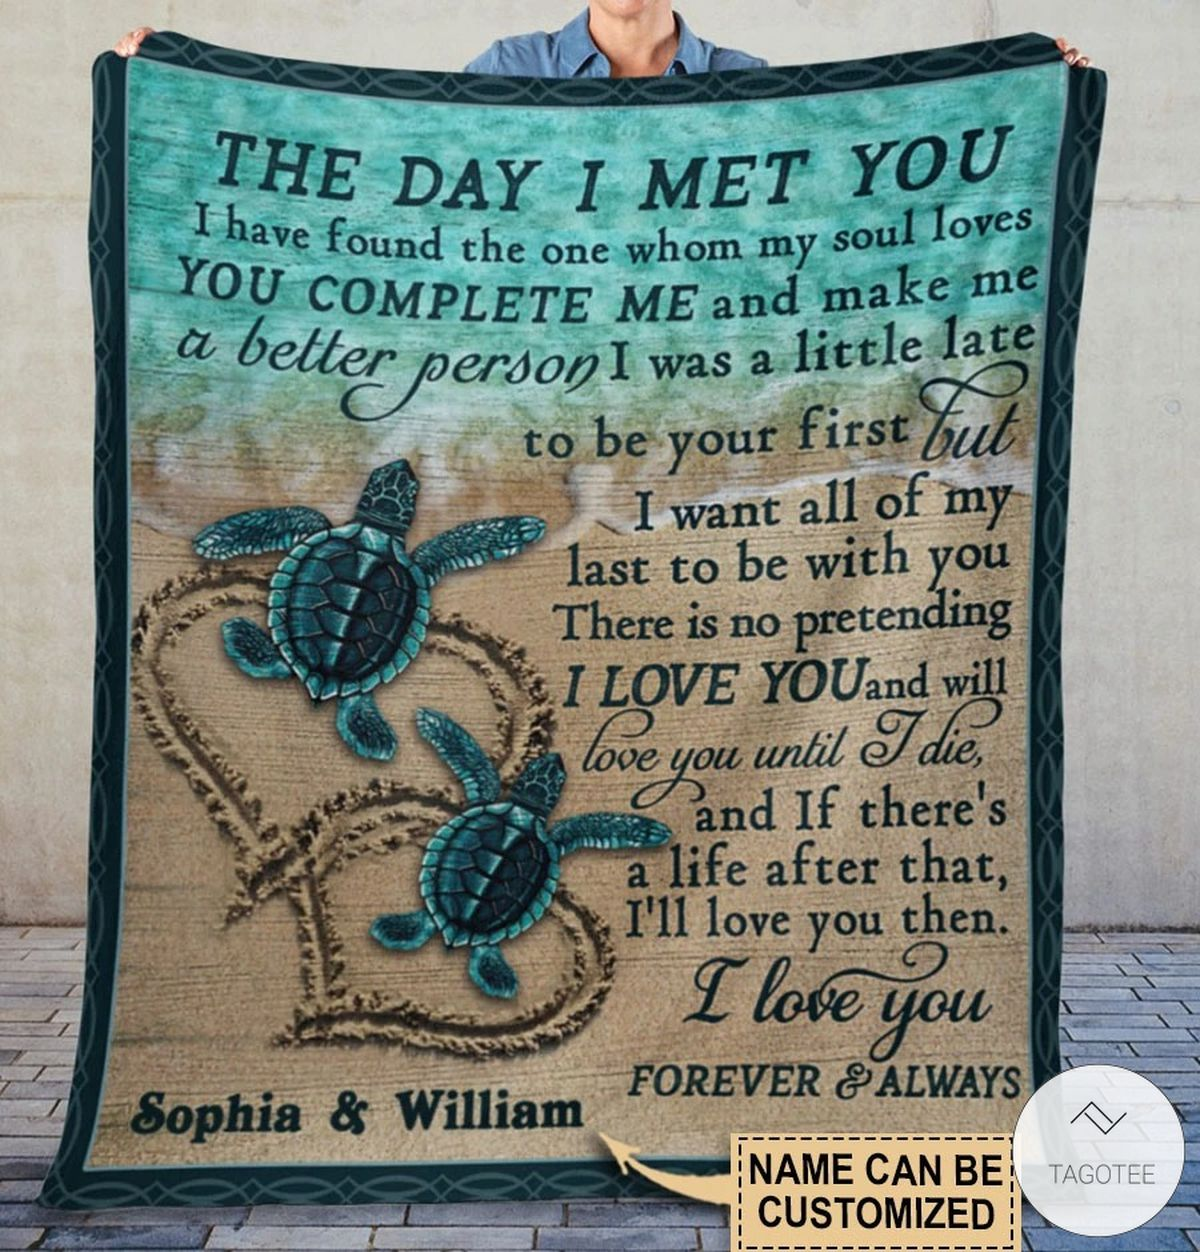 Personalized Sea Turtle The Day I Met You I Have Found The One Whom My Soul Loves Fleece Blaket x